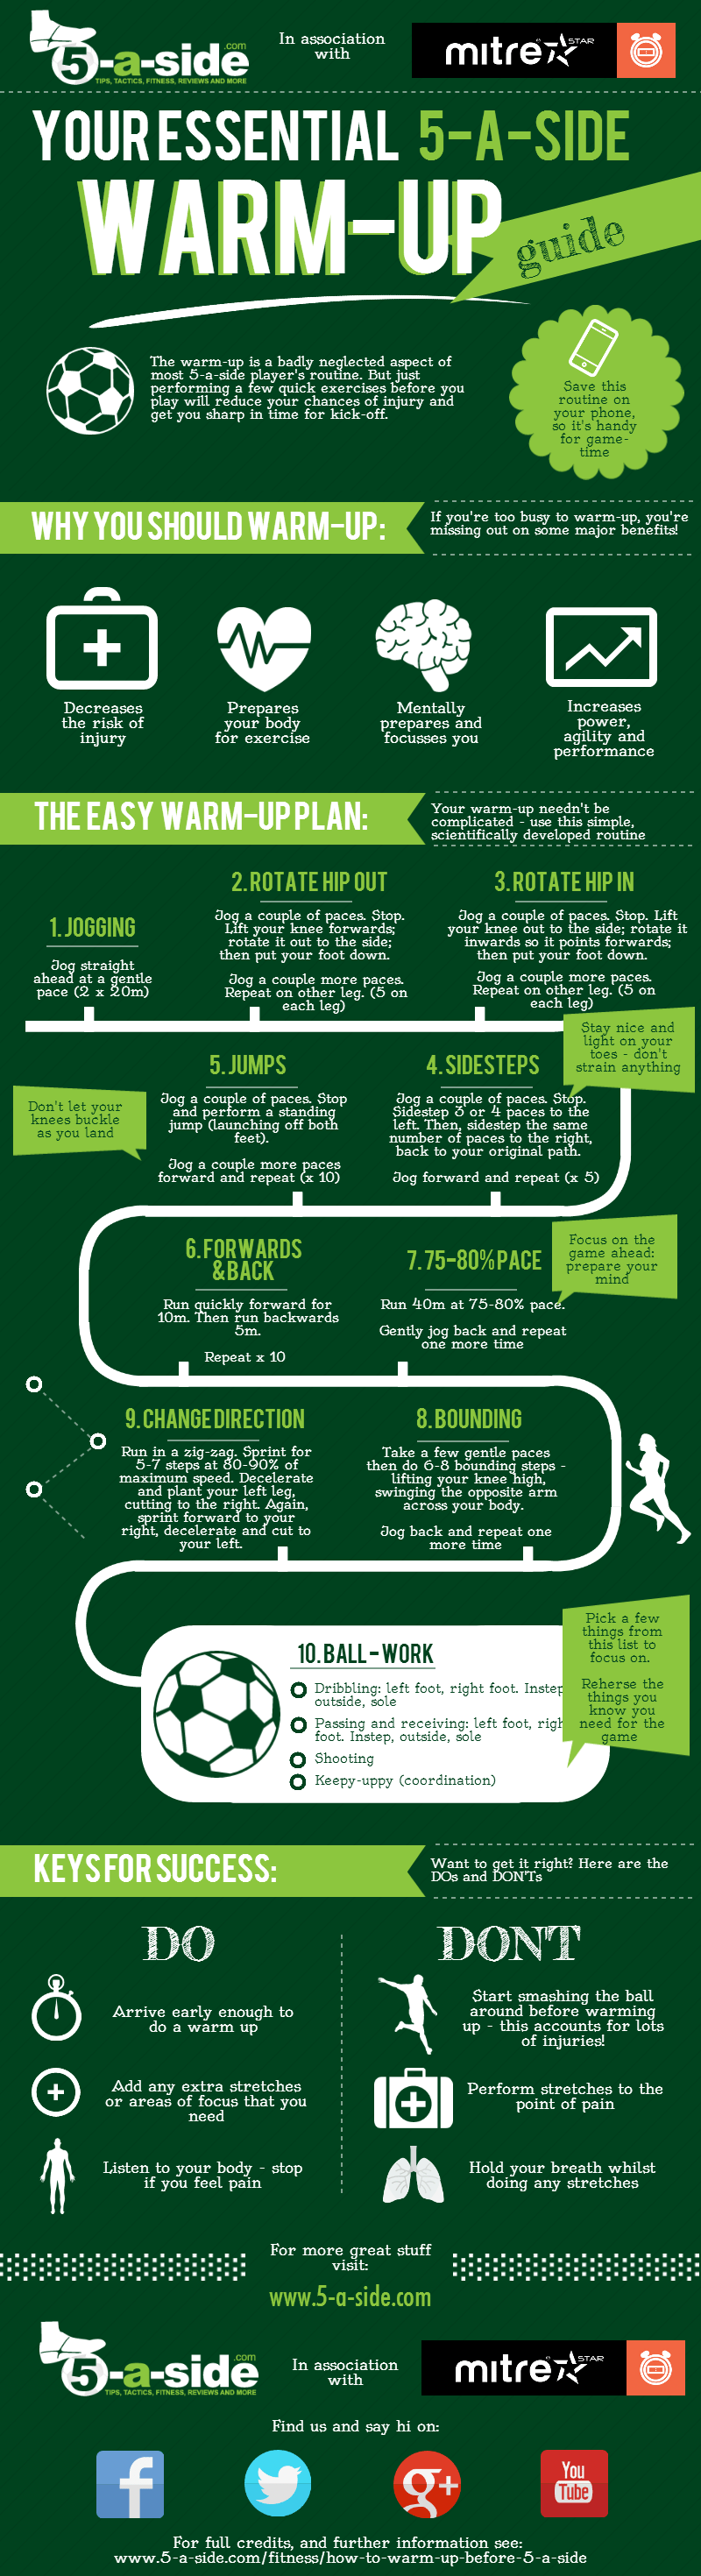 5-a-side warm-up info graphic